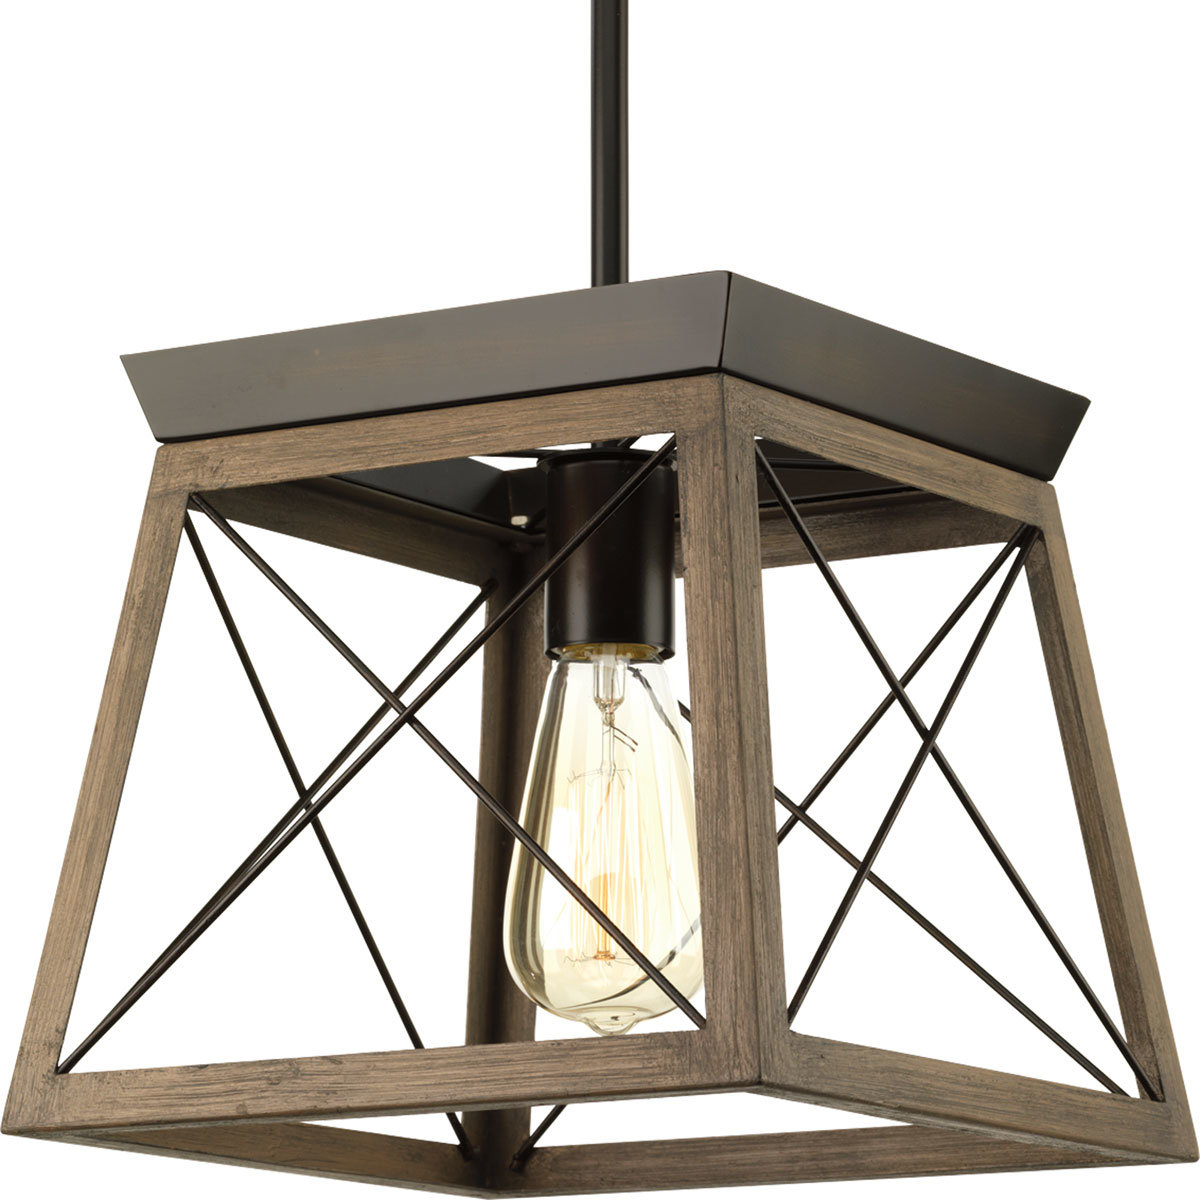 Fashionable Delon 1 Light Lantern Geometric Pendant Within Louanne 1 Light Lantern Geometric Pendants (View 13 of 25)